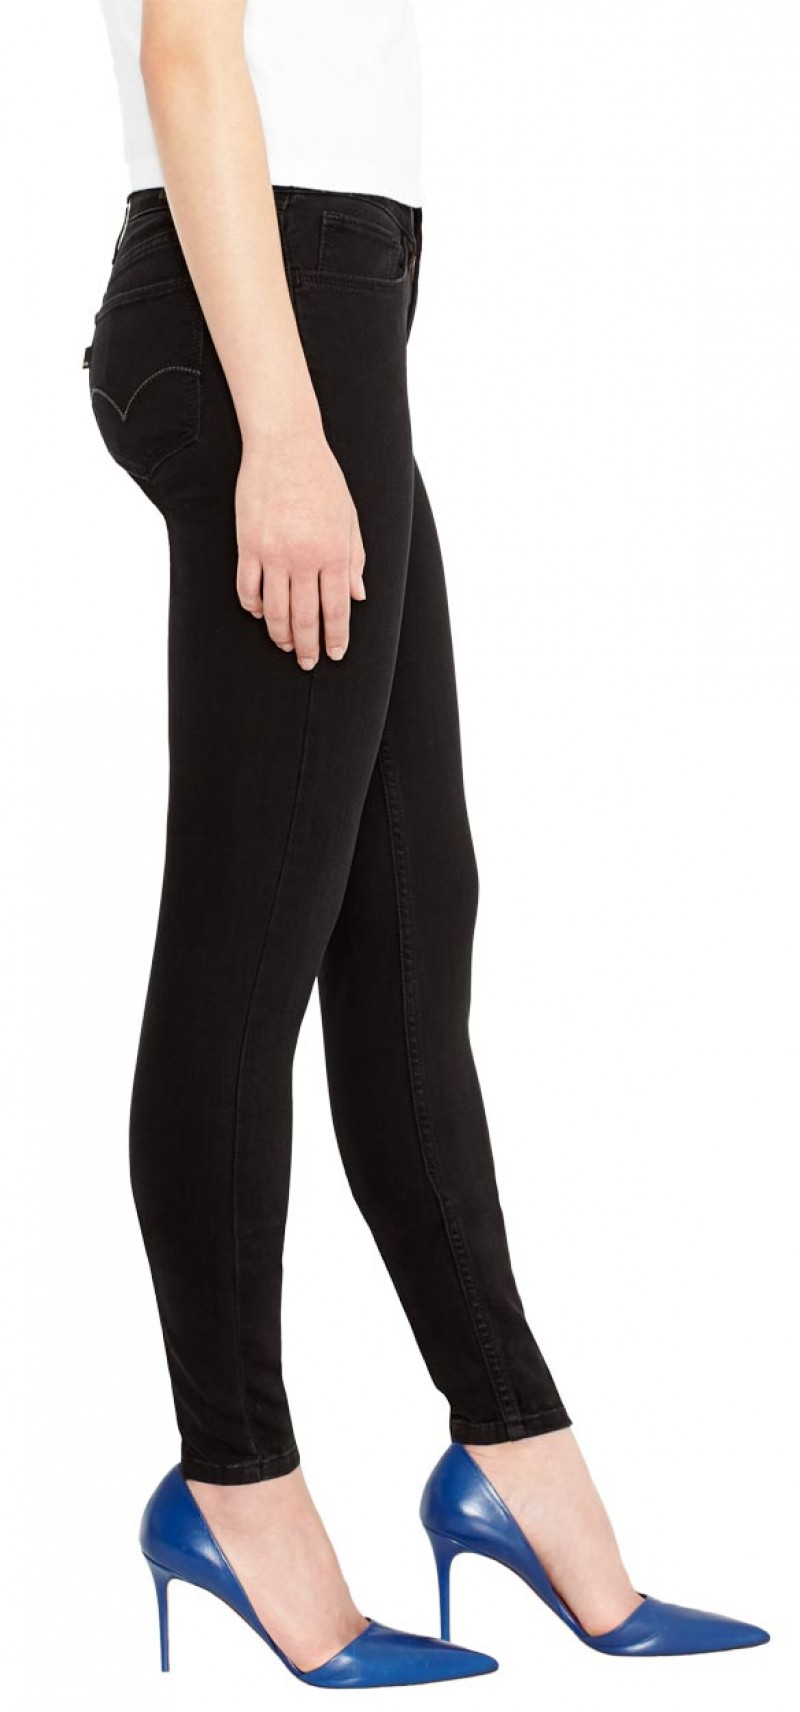 Levis Legging Jeans - Skinny Fit - Soft Black